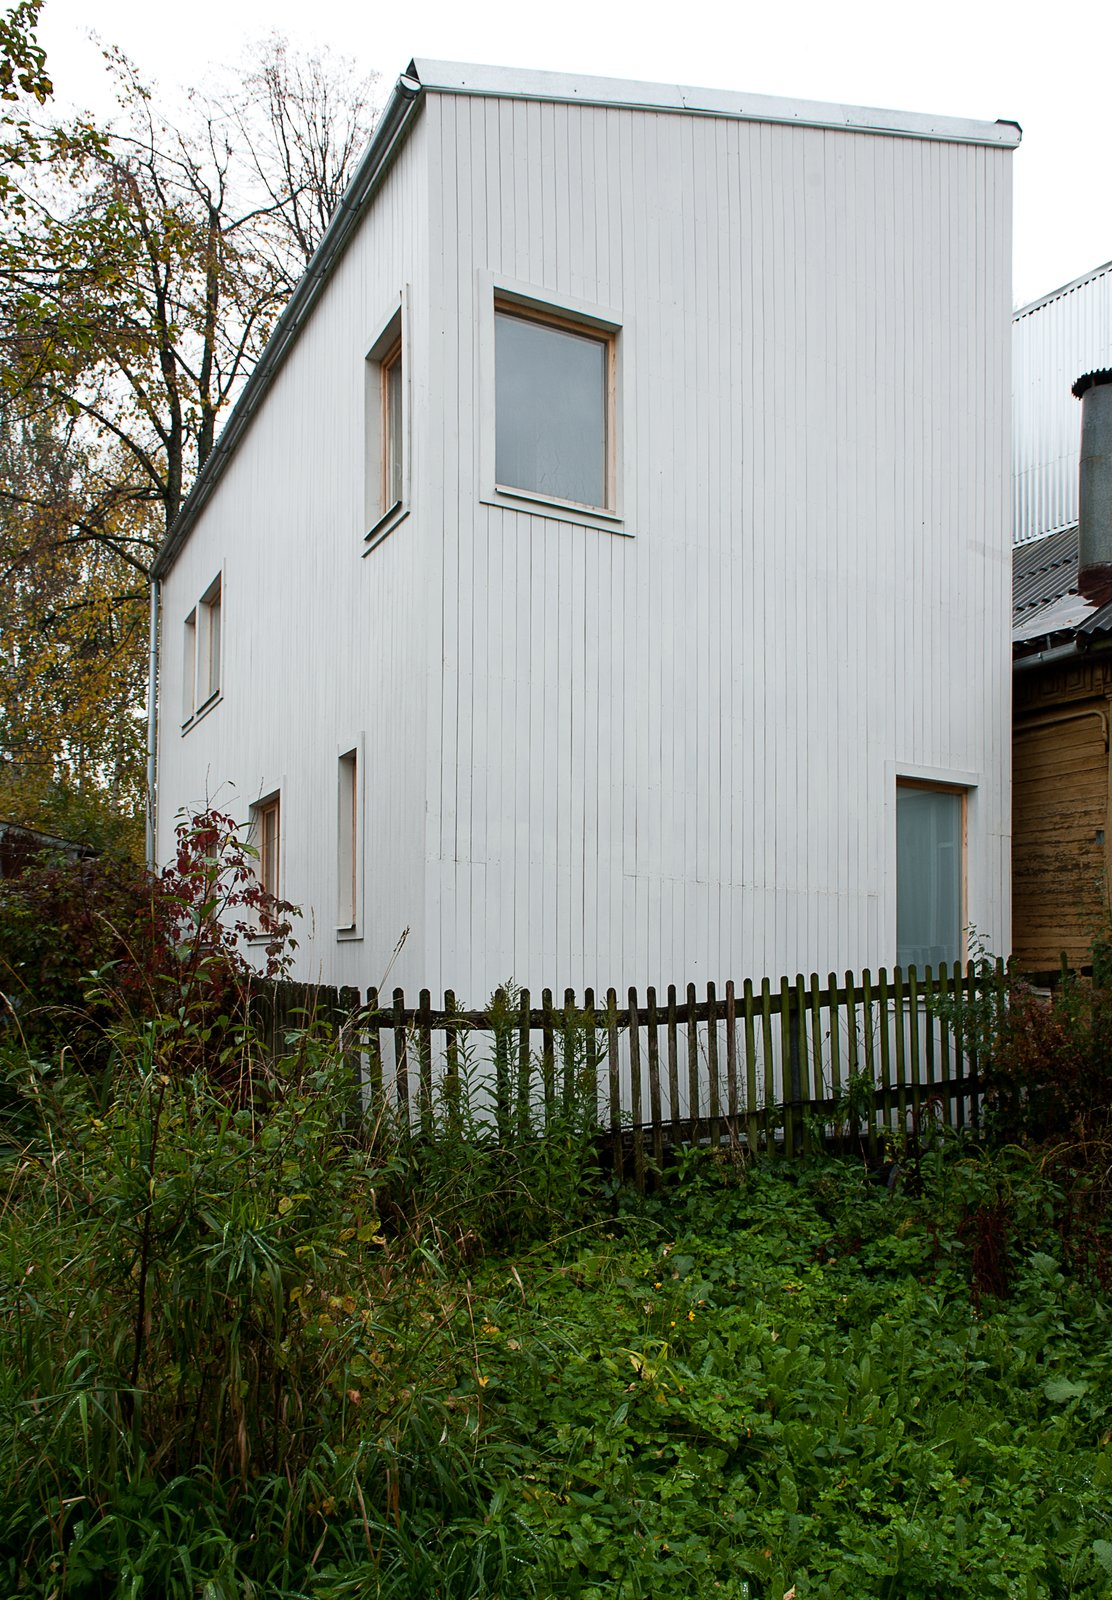 Placed throughout the home's slatted wood exterior, windows are positioned to allow for the most attractive views and ample natural light. The sloped roof design was chosen for its minimal cost, and for its ability to redirect snow away from a neighboring residence.  A Compact Home in Moscow Built on the Lowest Possible Budget by Tiffany Jow